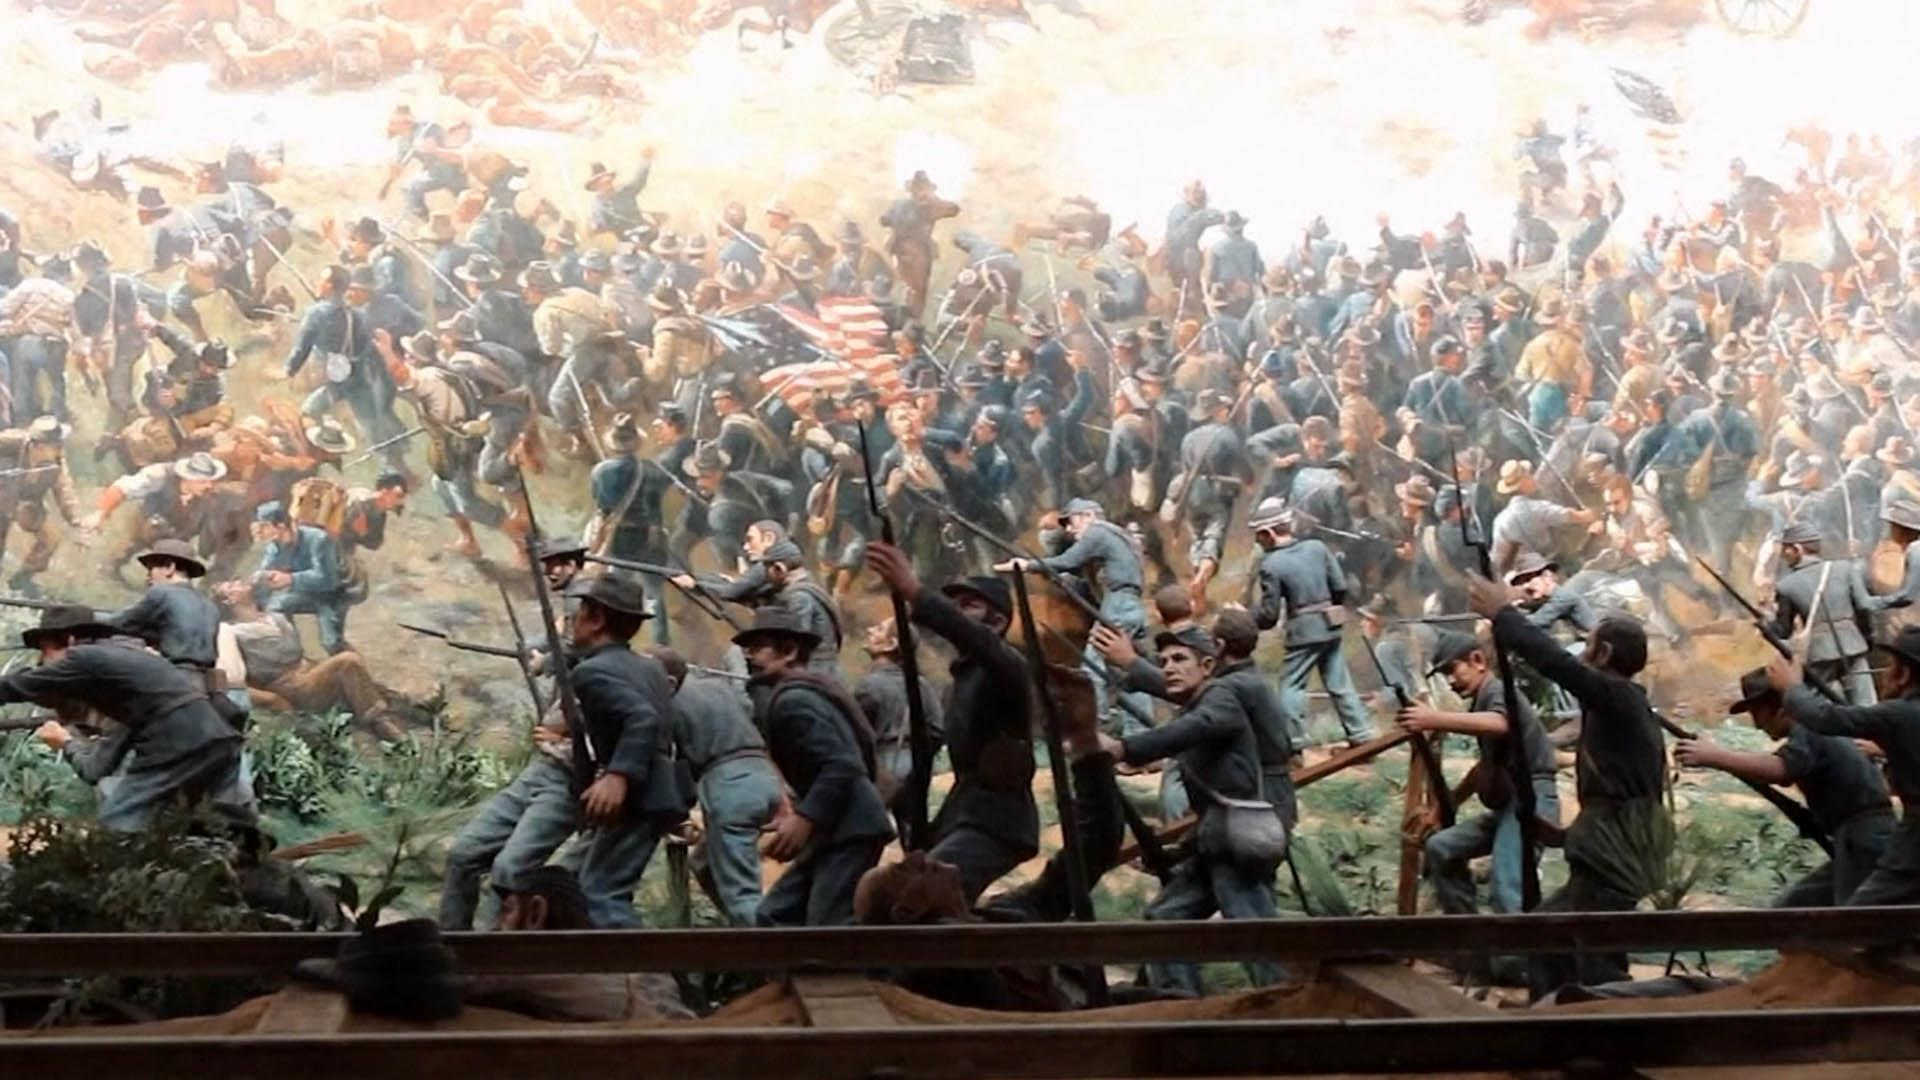 Atlanta's Cyclorama to be unveiled again amid diverging views of past